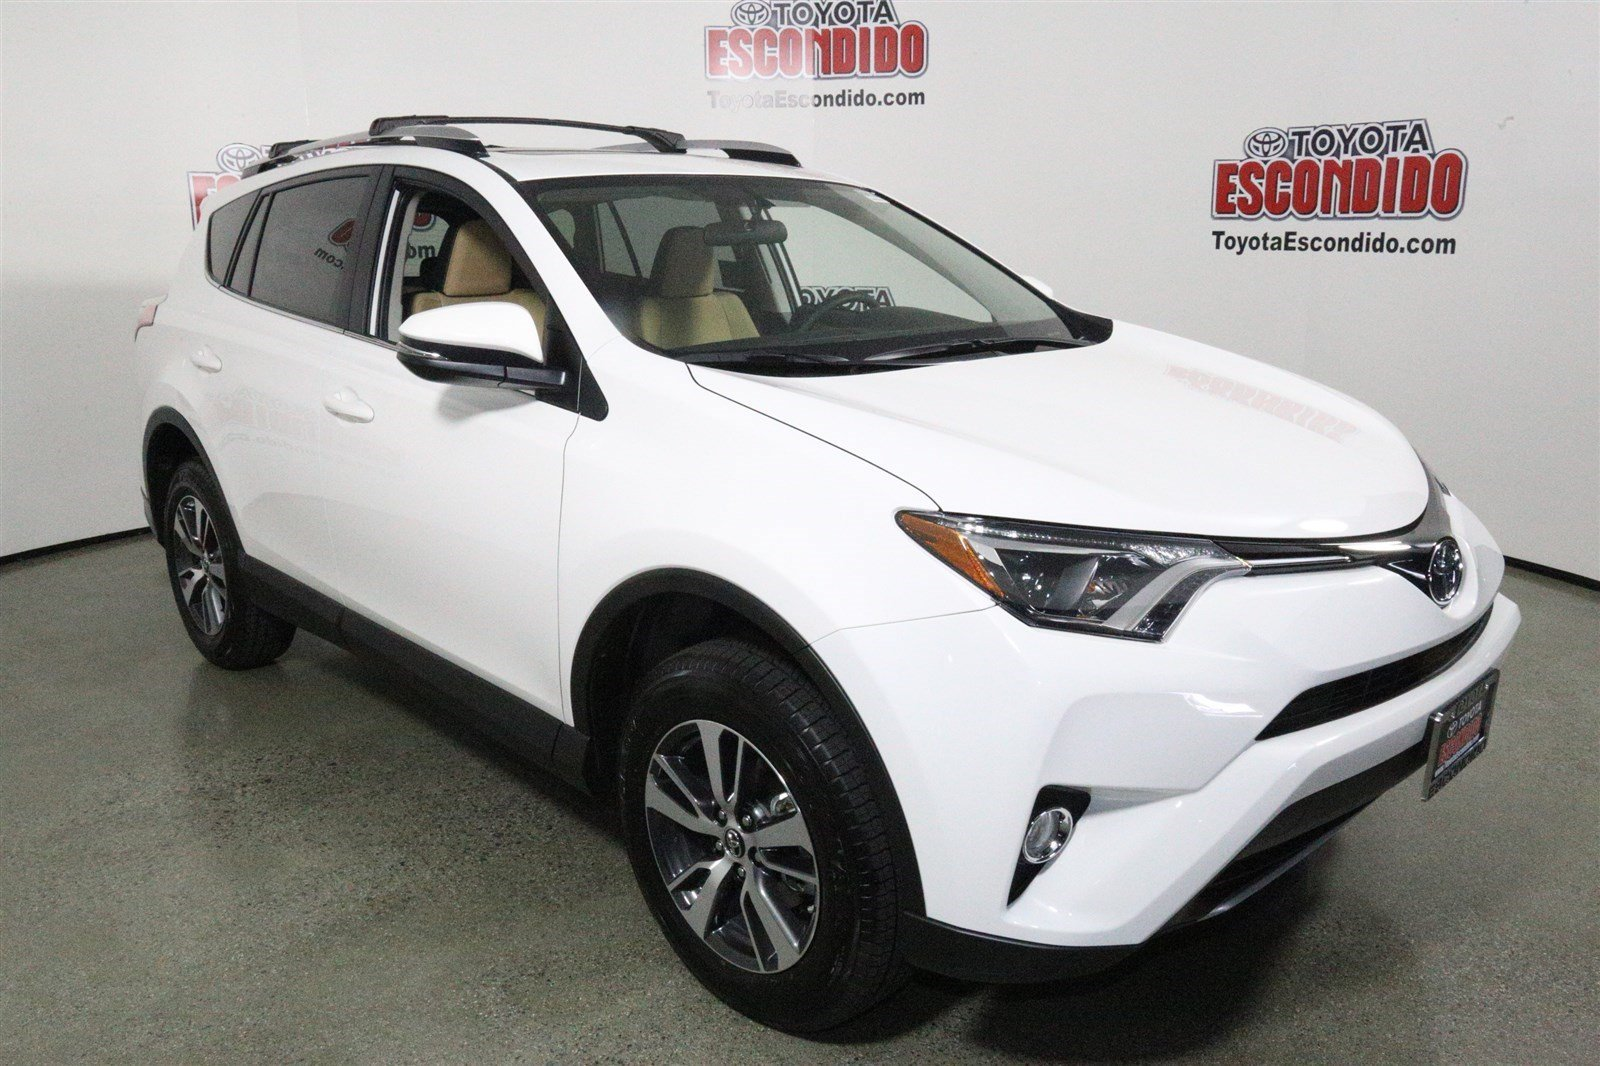 2017 toyota rav4 prices msrp vs dealer invoice vs true. Black Bedroom Furniture Sets. Home Design Ideas